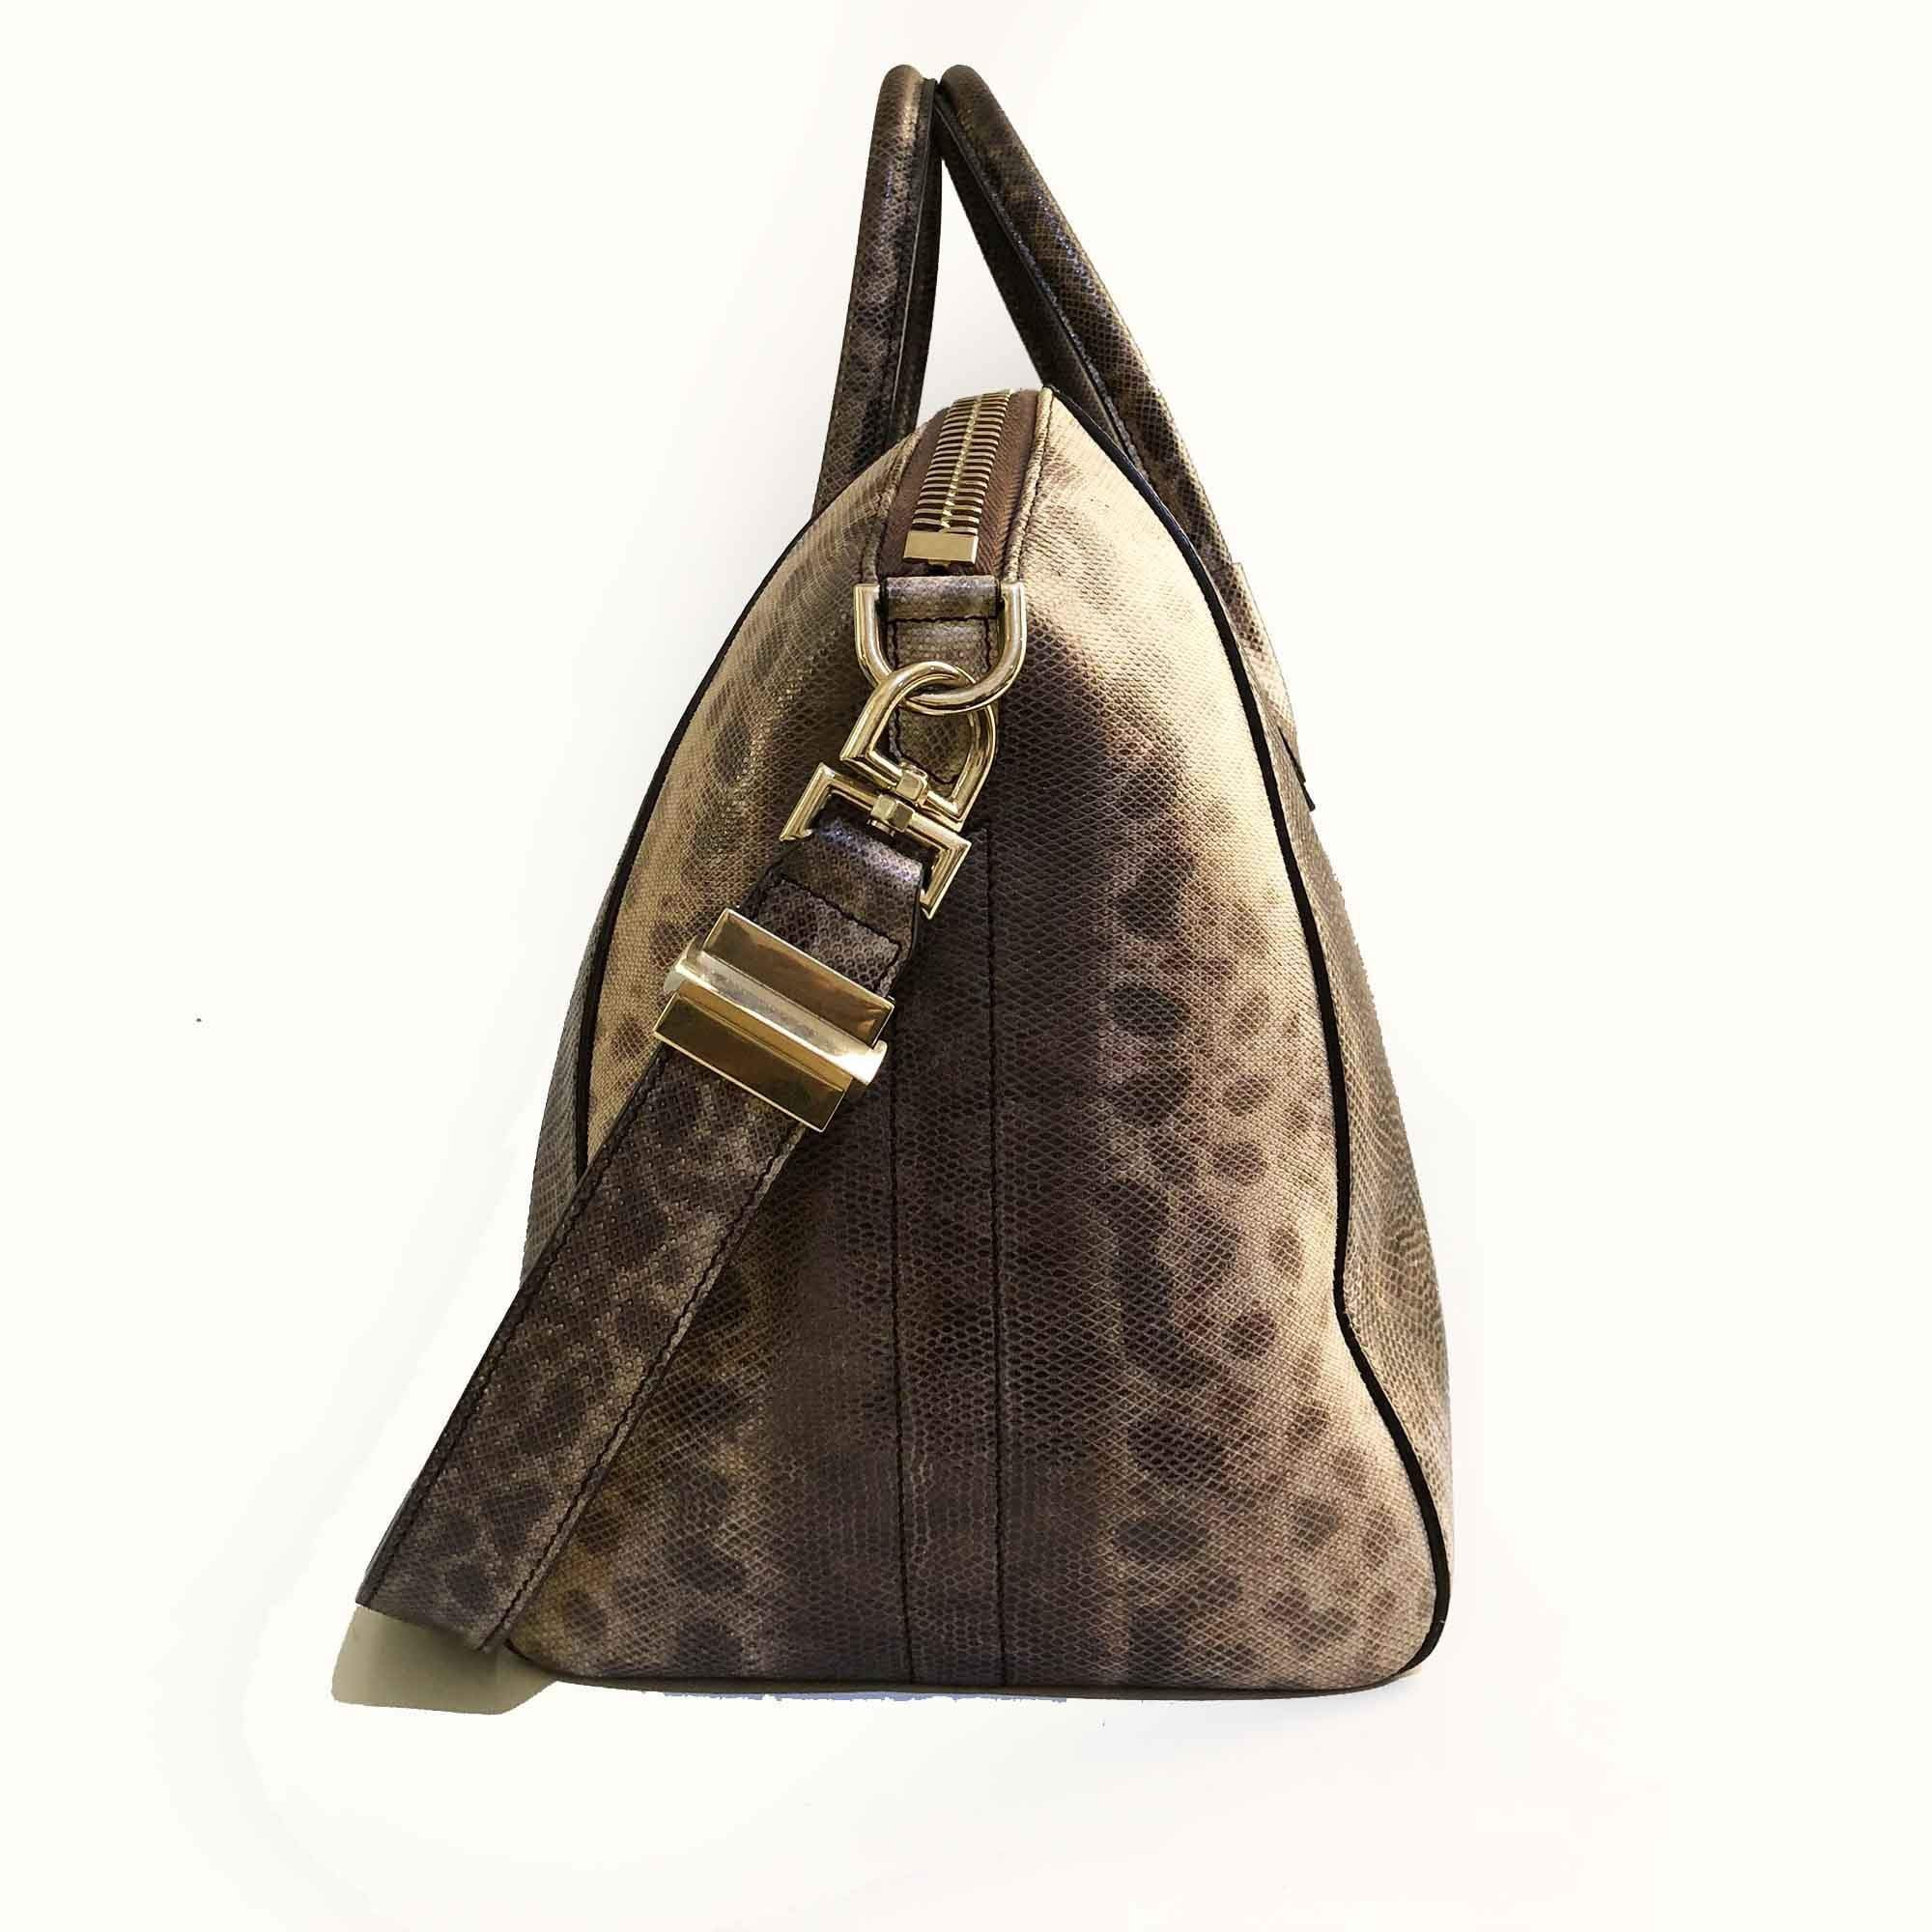 Givenchy Antigona Snakeskin Satchel Bag